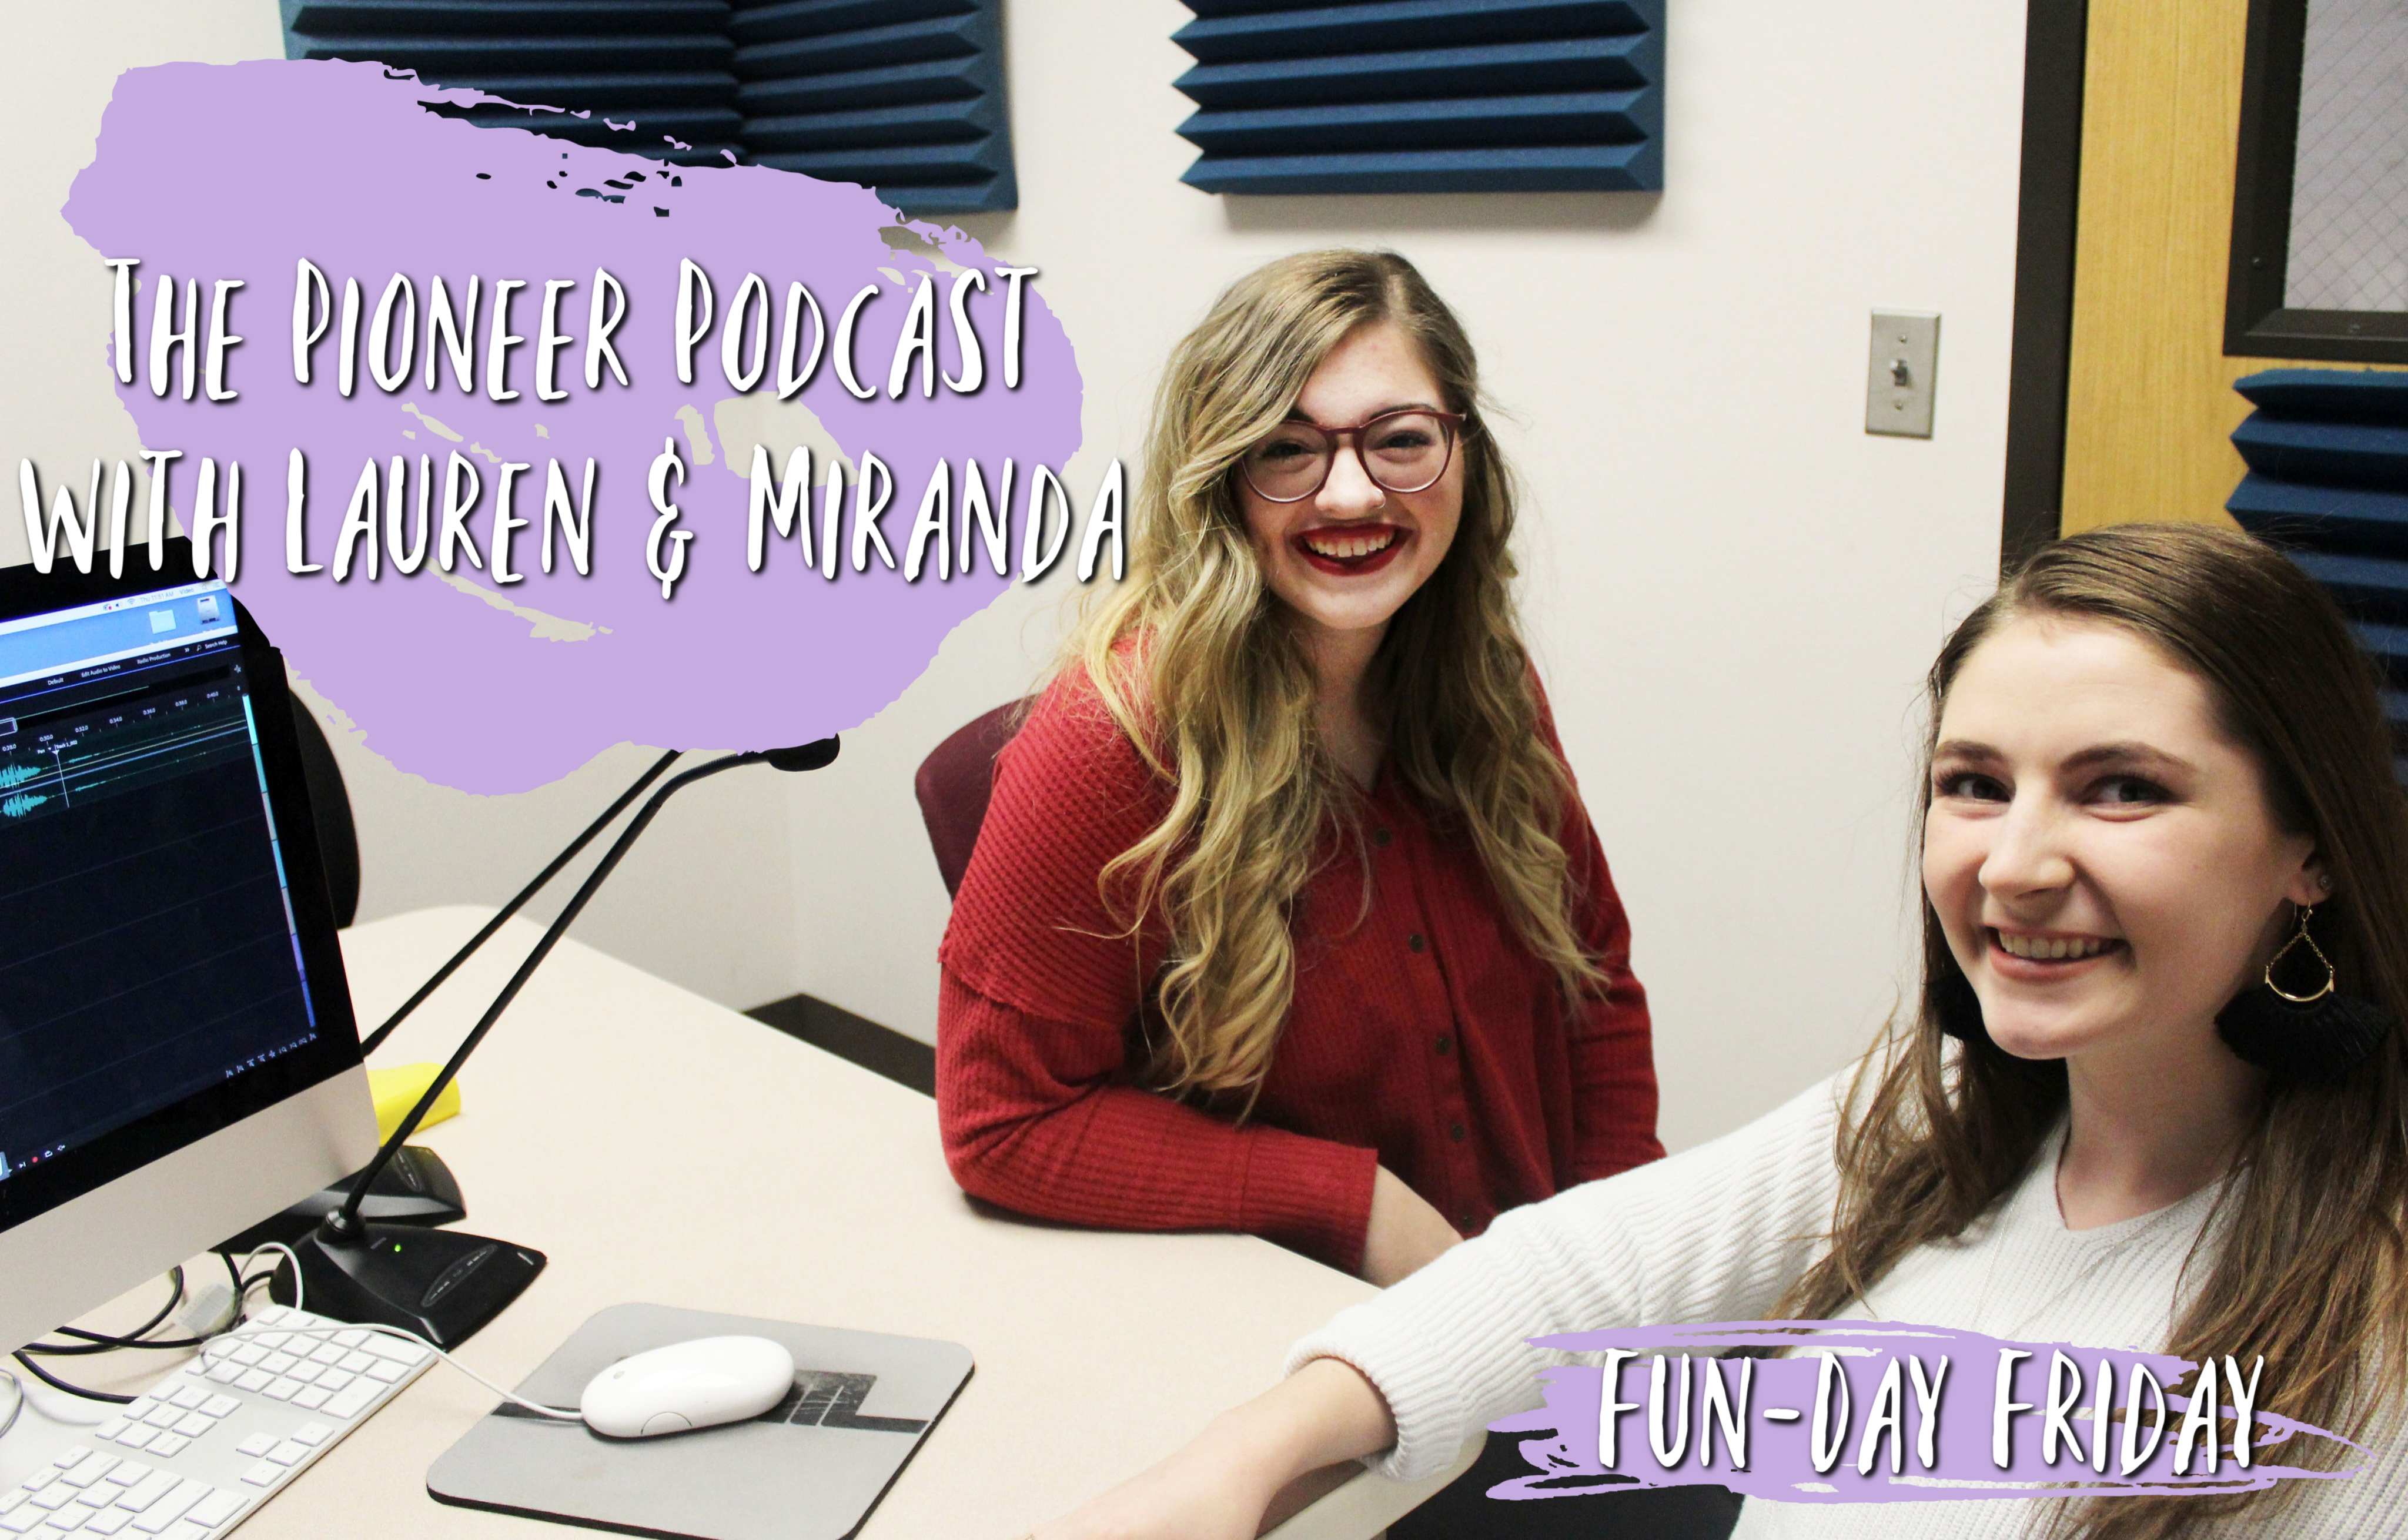 The Pioneer Podcast with Lauren and Miranda: Fun-Day Friday